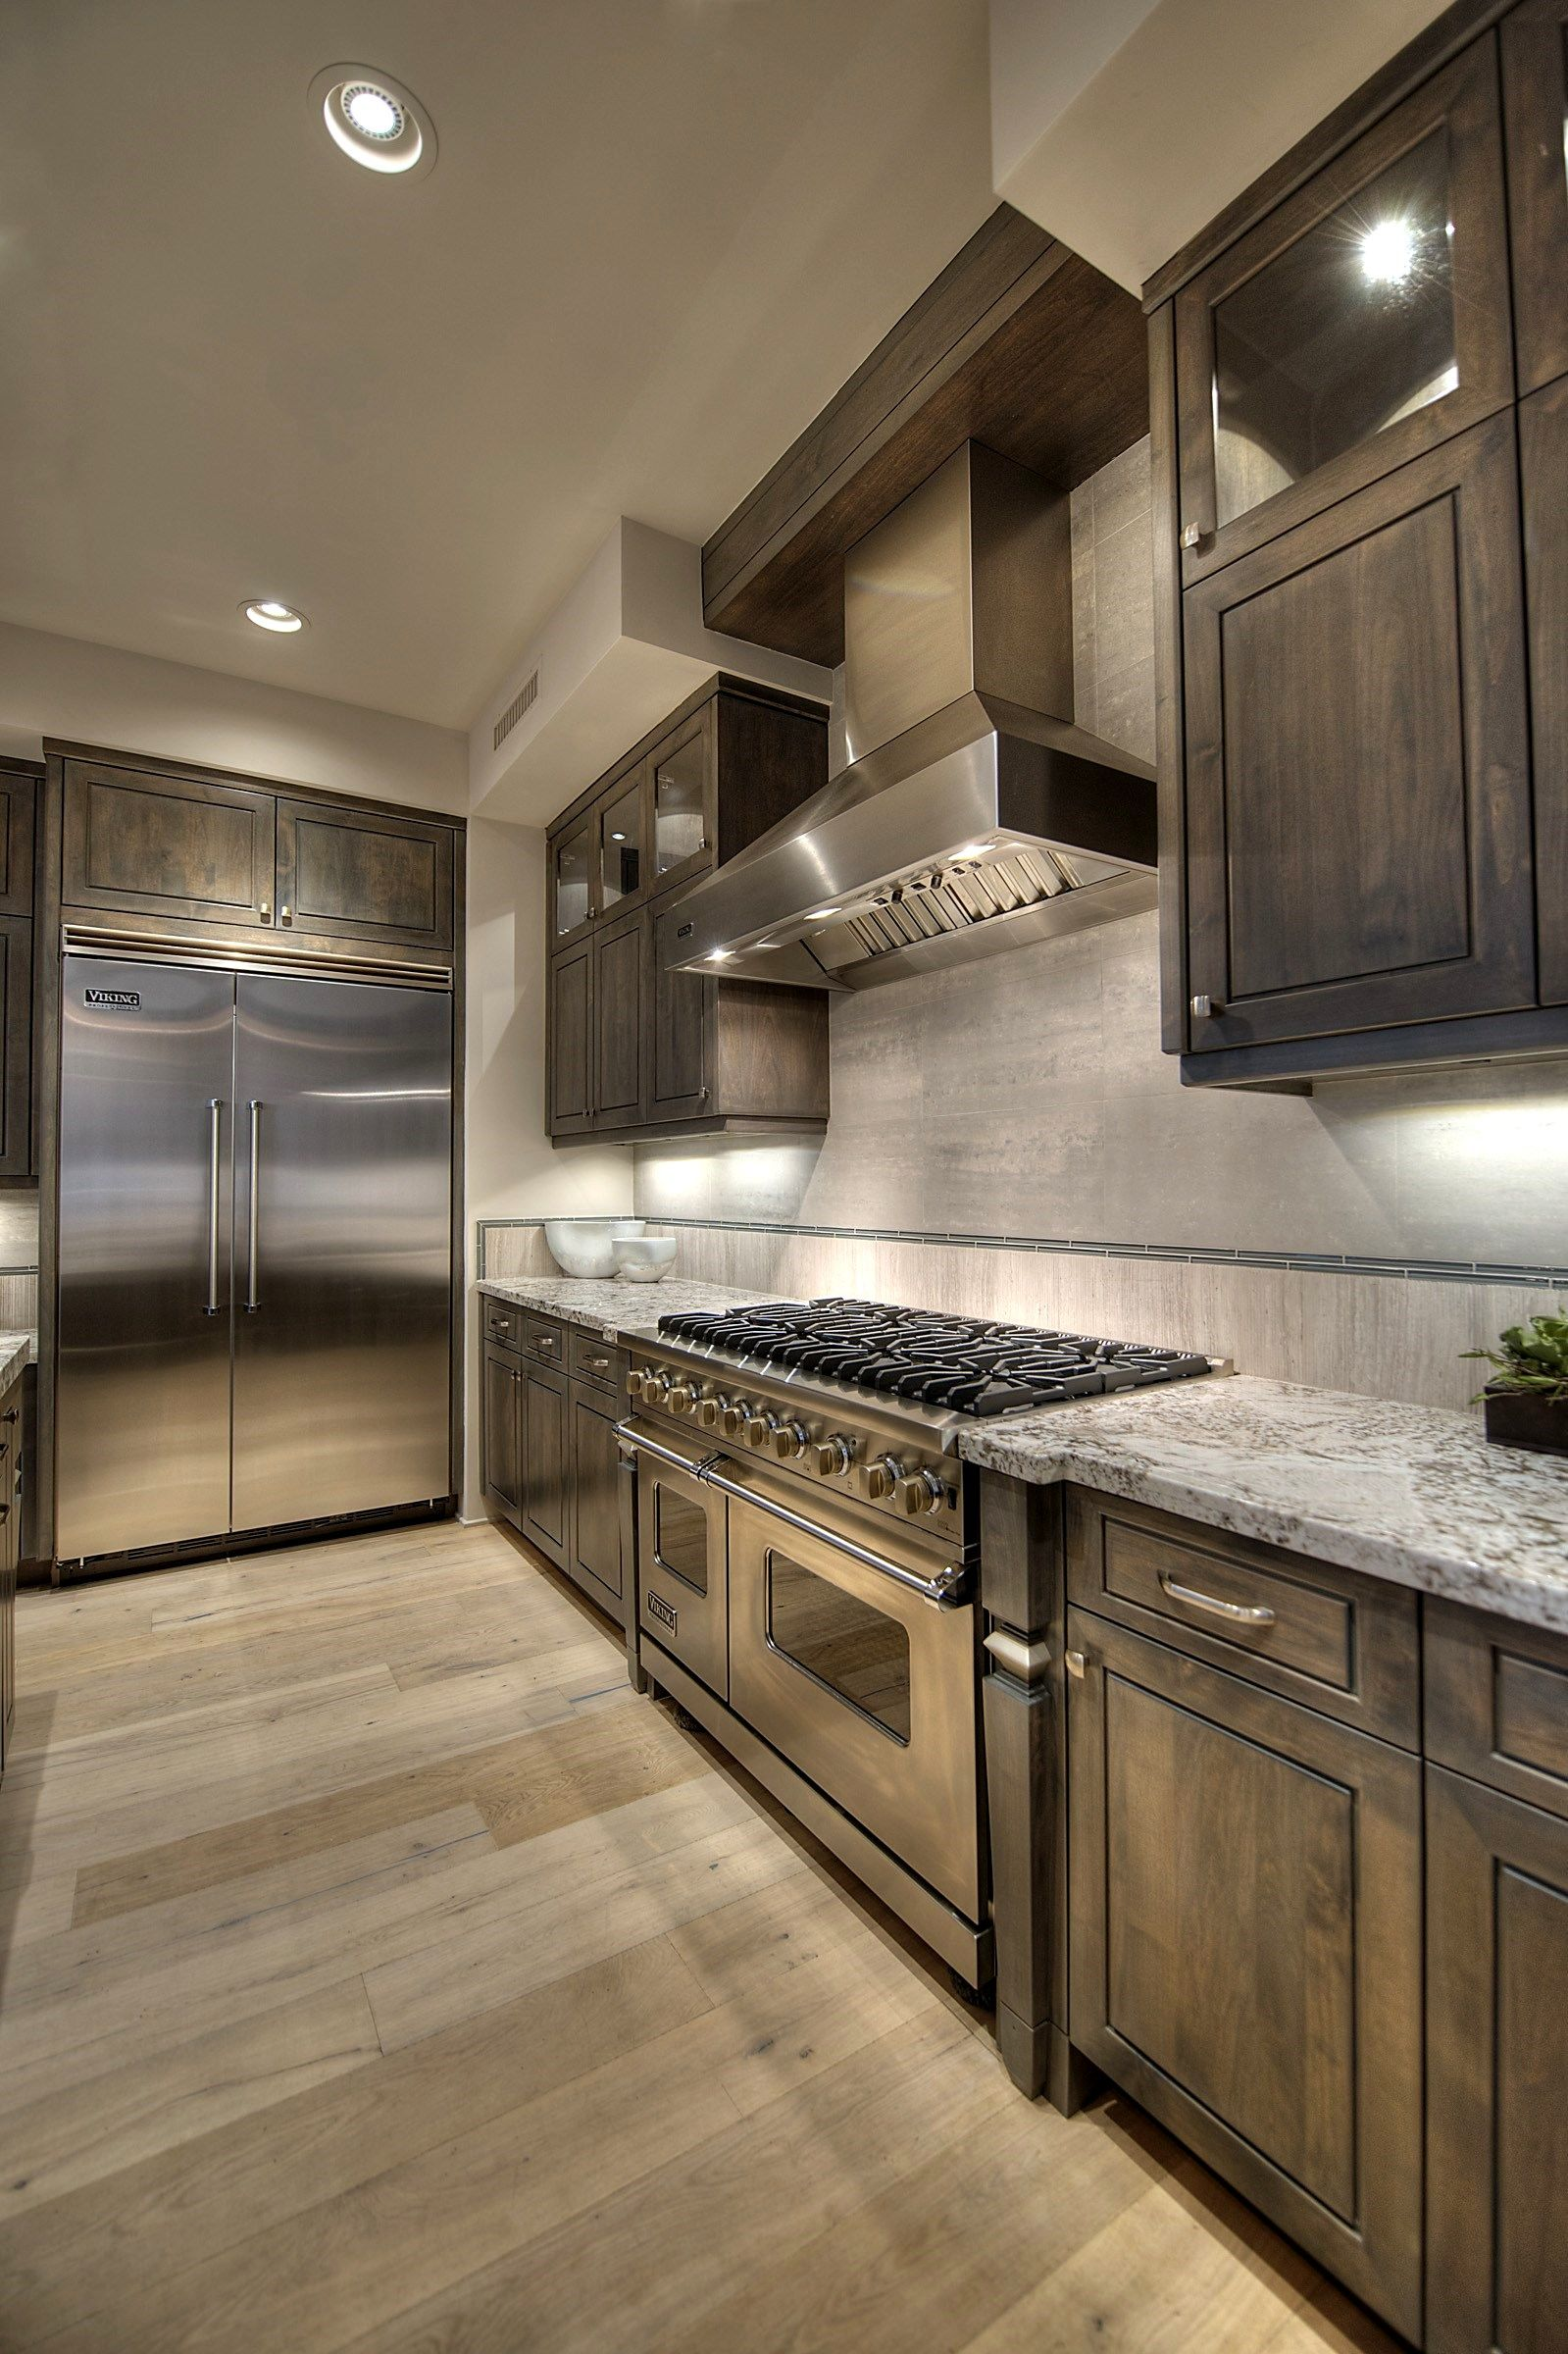 maintenance your custom archives solid with countertops stone bill cost faux awesome tops phoenix countertop quality to companies granite express cecilia vanity cleaning prices edmonton vreins marble silestone where best get price of stainless white and quartz kitchen santa turffle